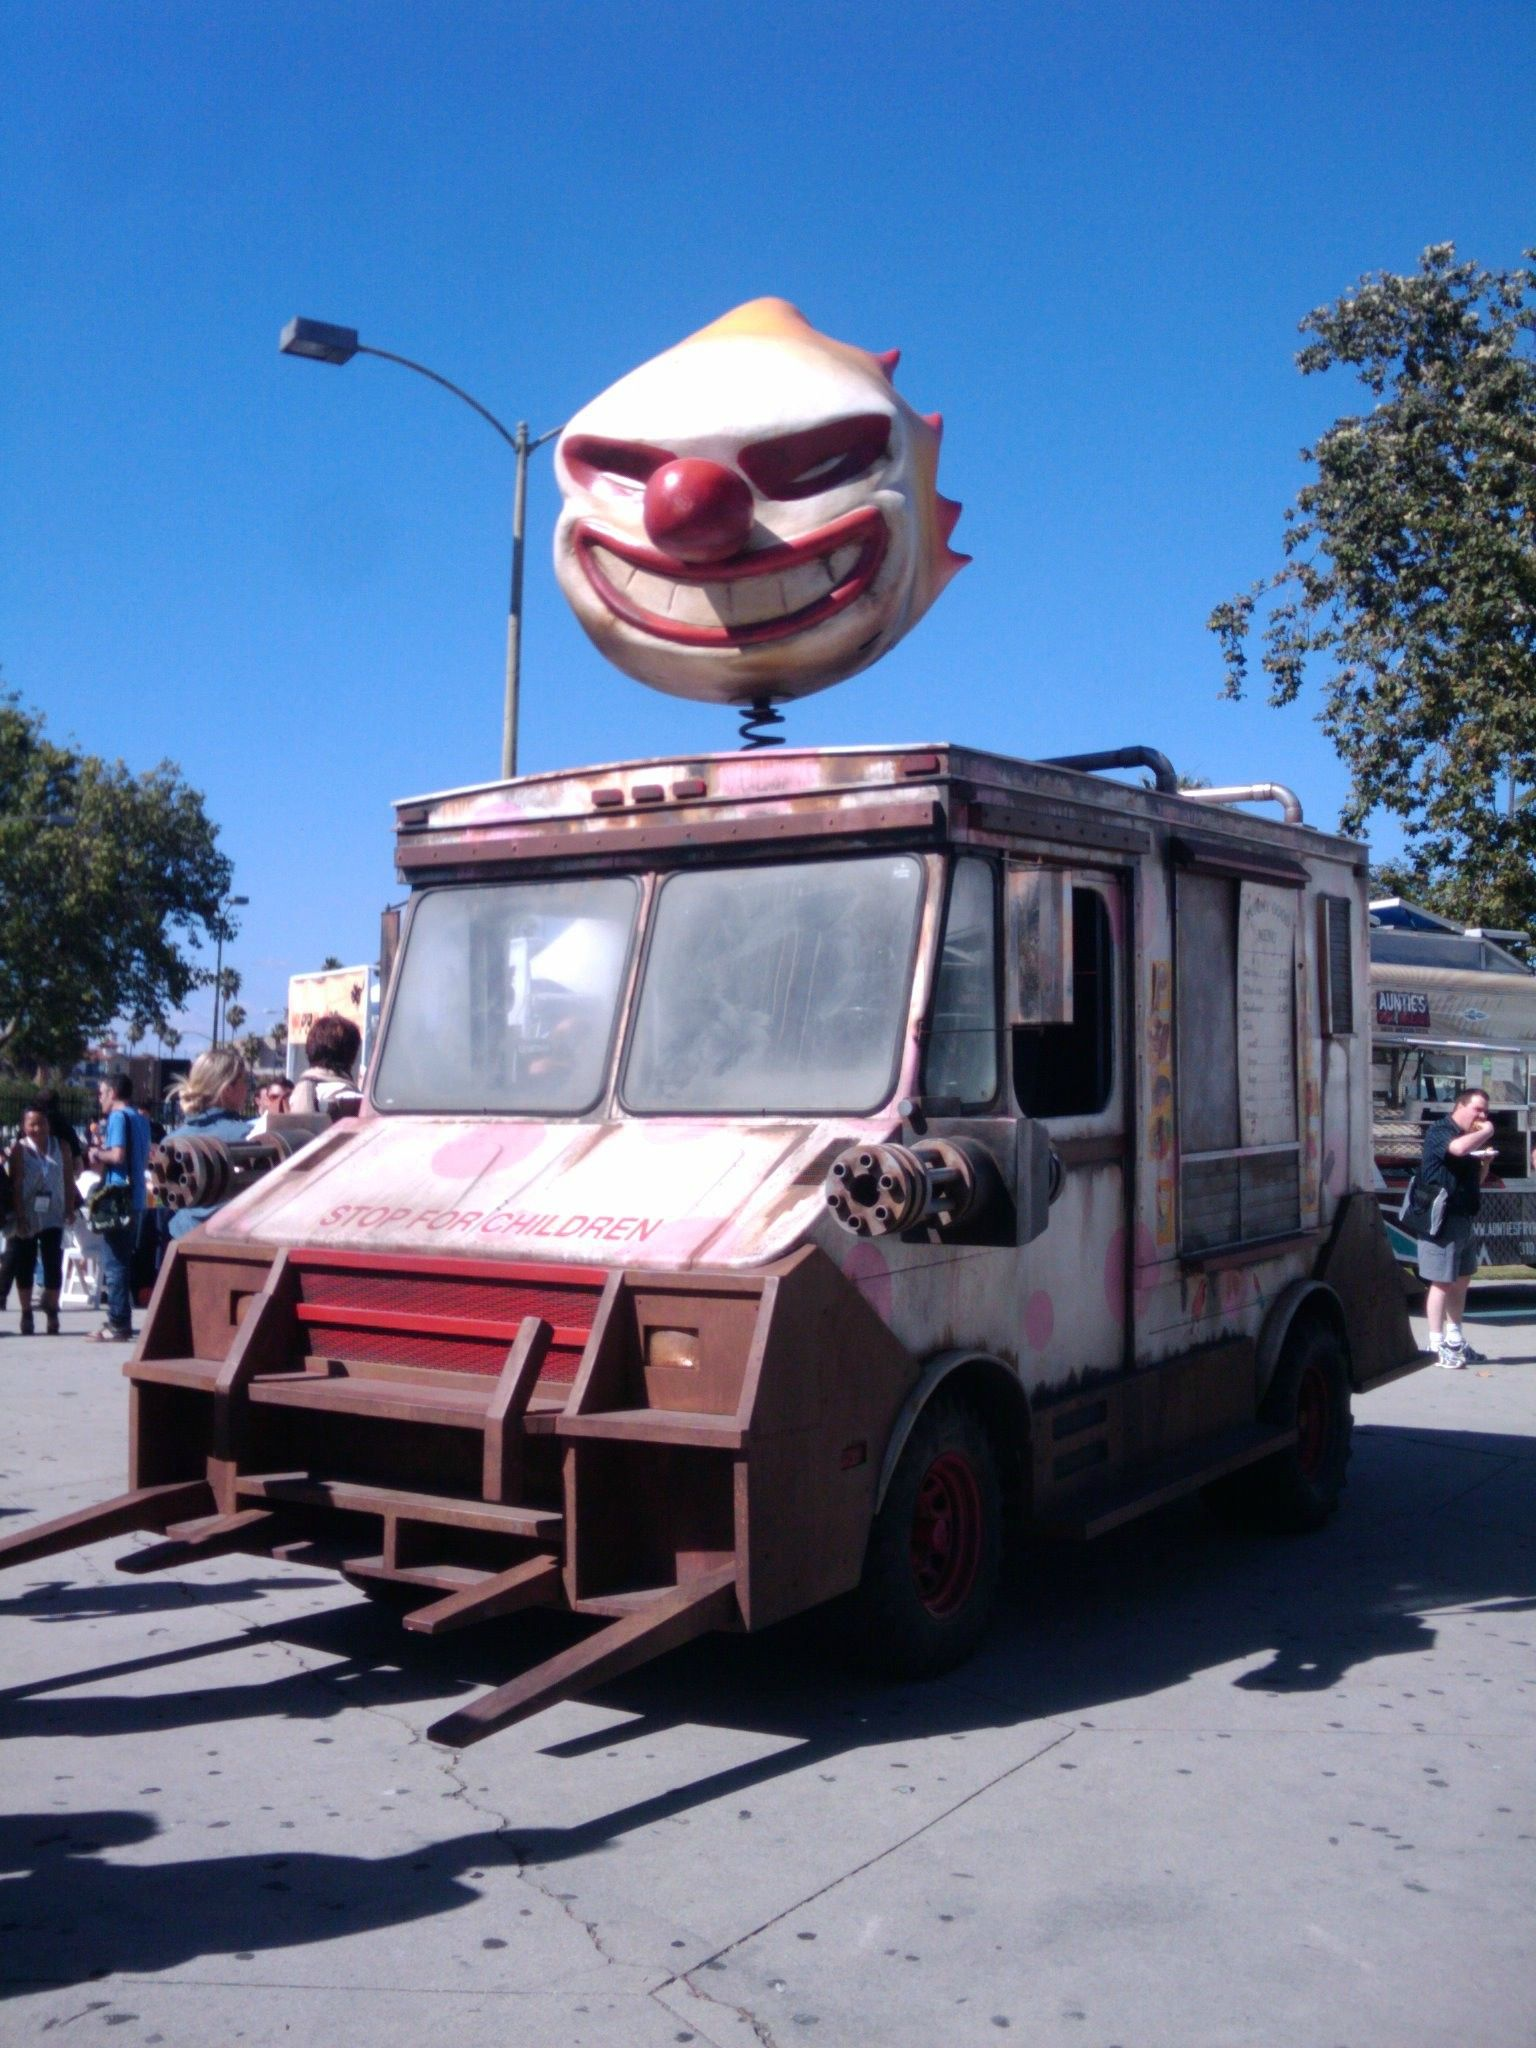 Want some ice cream? Twisted metal, Ice cream van, Scary